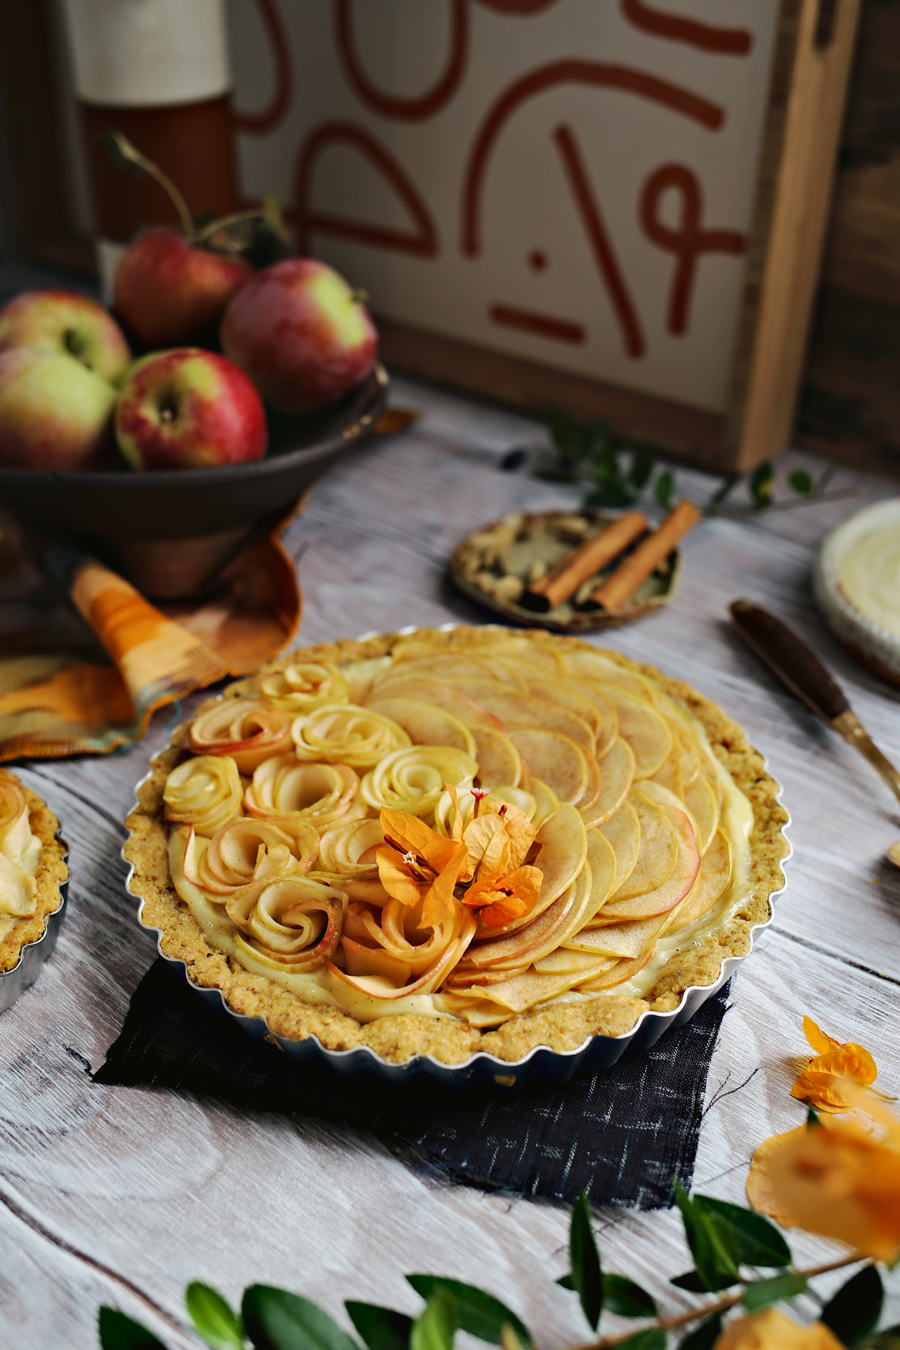 07_Apple-Cardamon-Tart-Recipe-Dine-X-Design.jpg